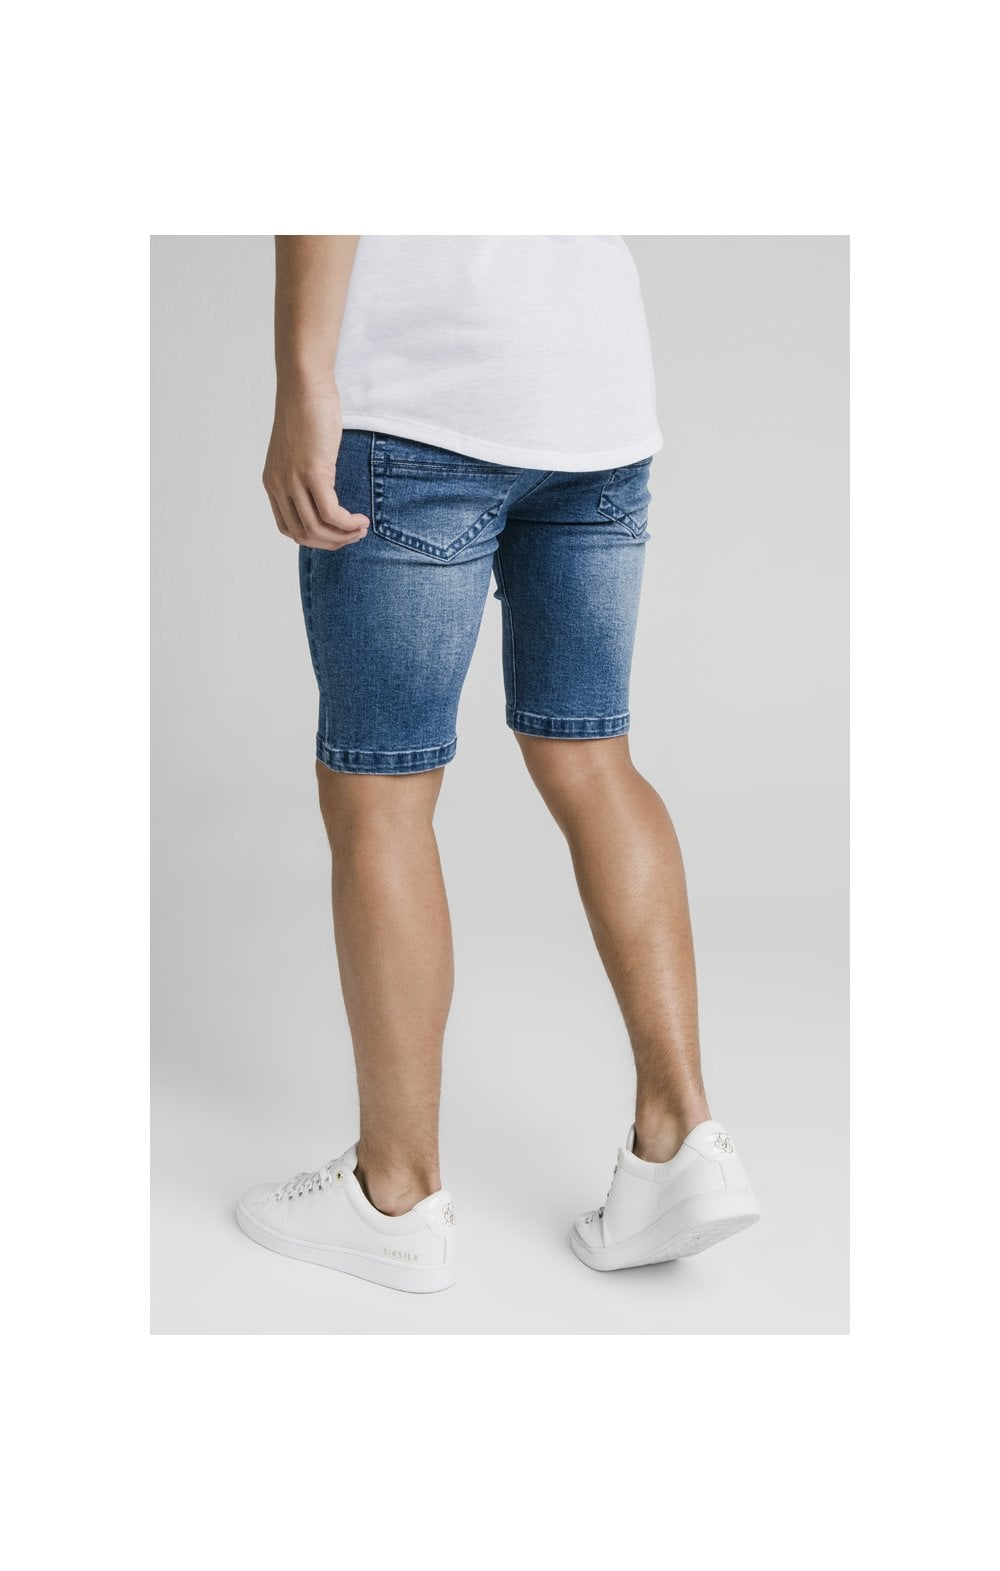 Load image into Gallery viewer, Illusive London Distressed Denim Shorts - Midstone (2)